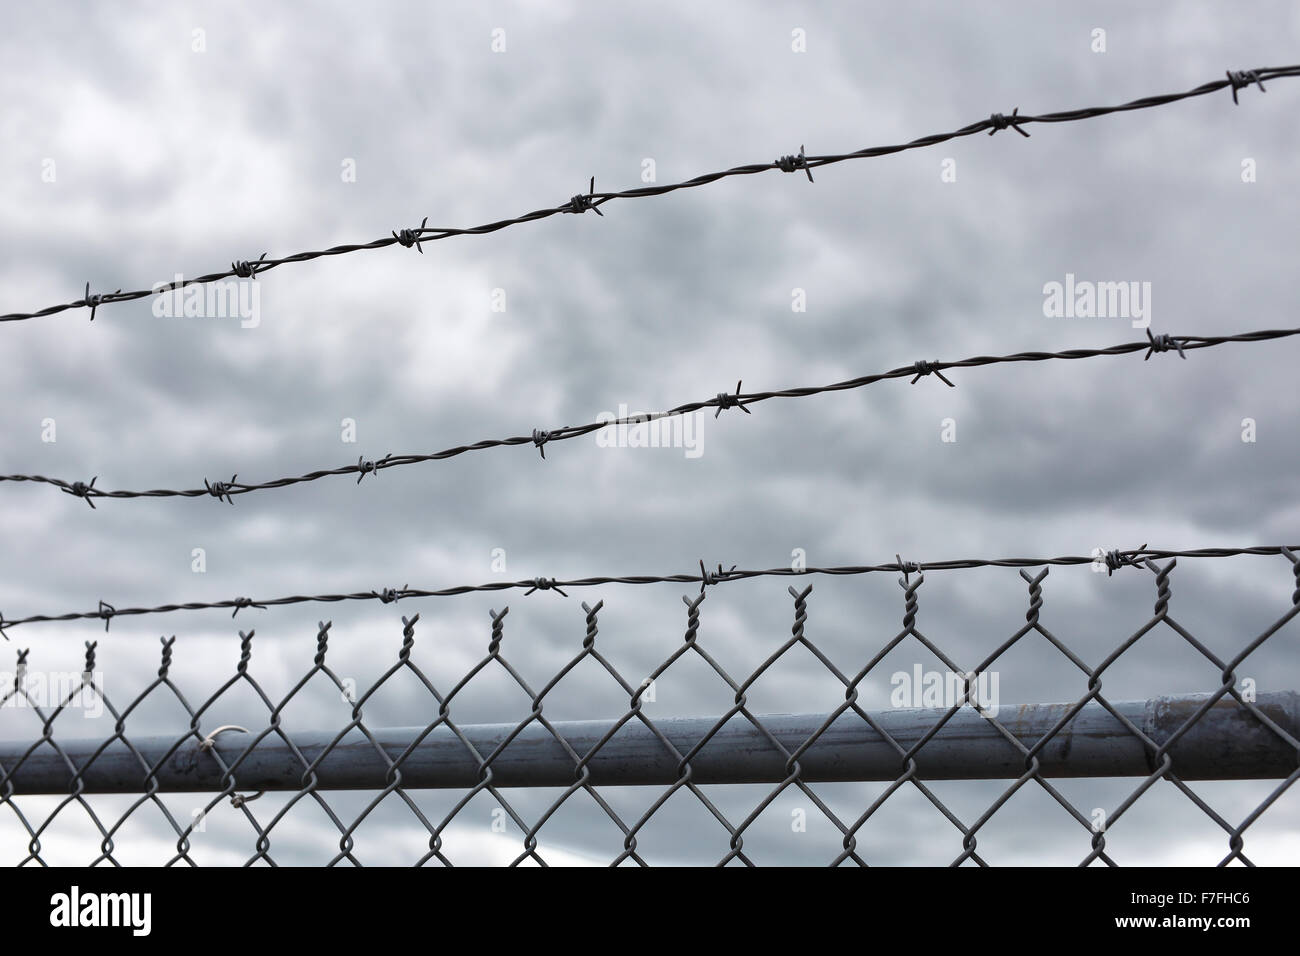 A view of the sky with dark clouds behind a barbed wire security fence. - Stock Image